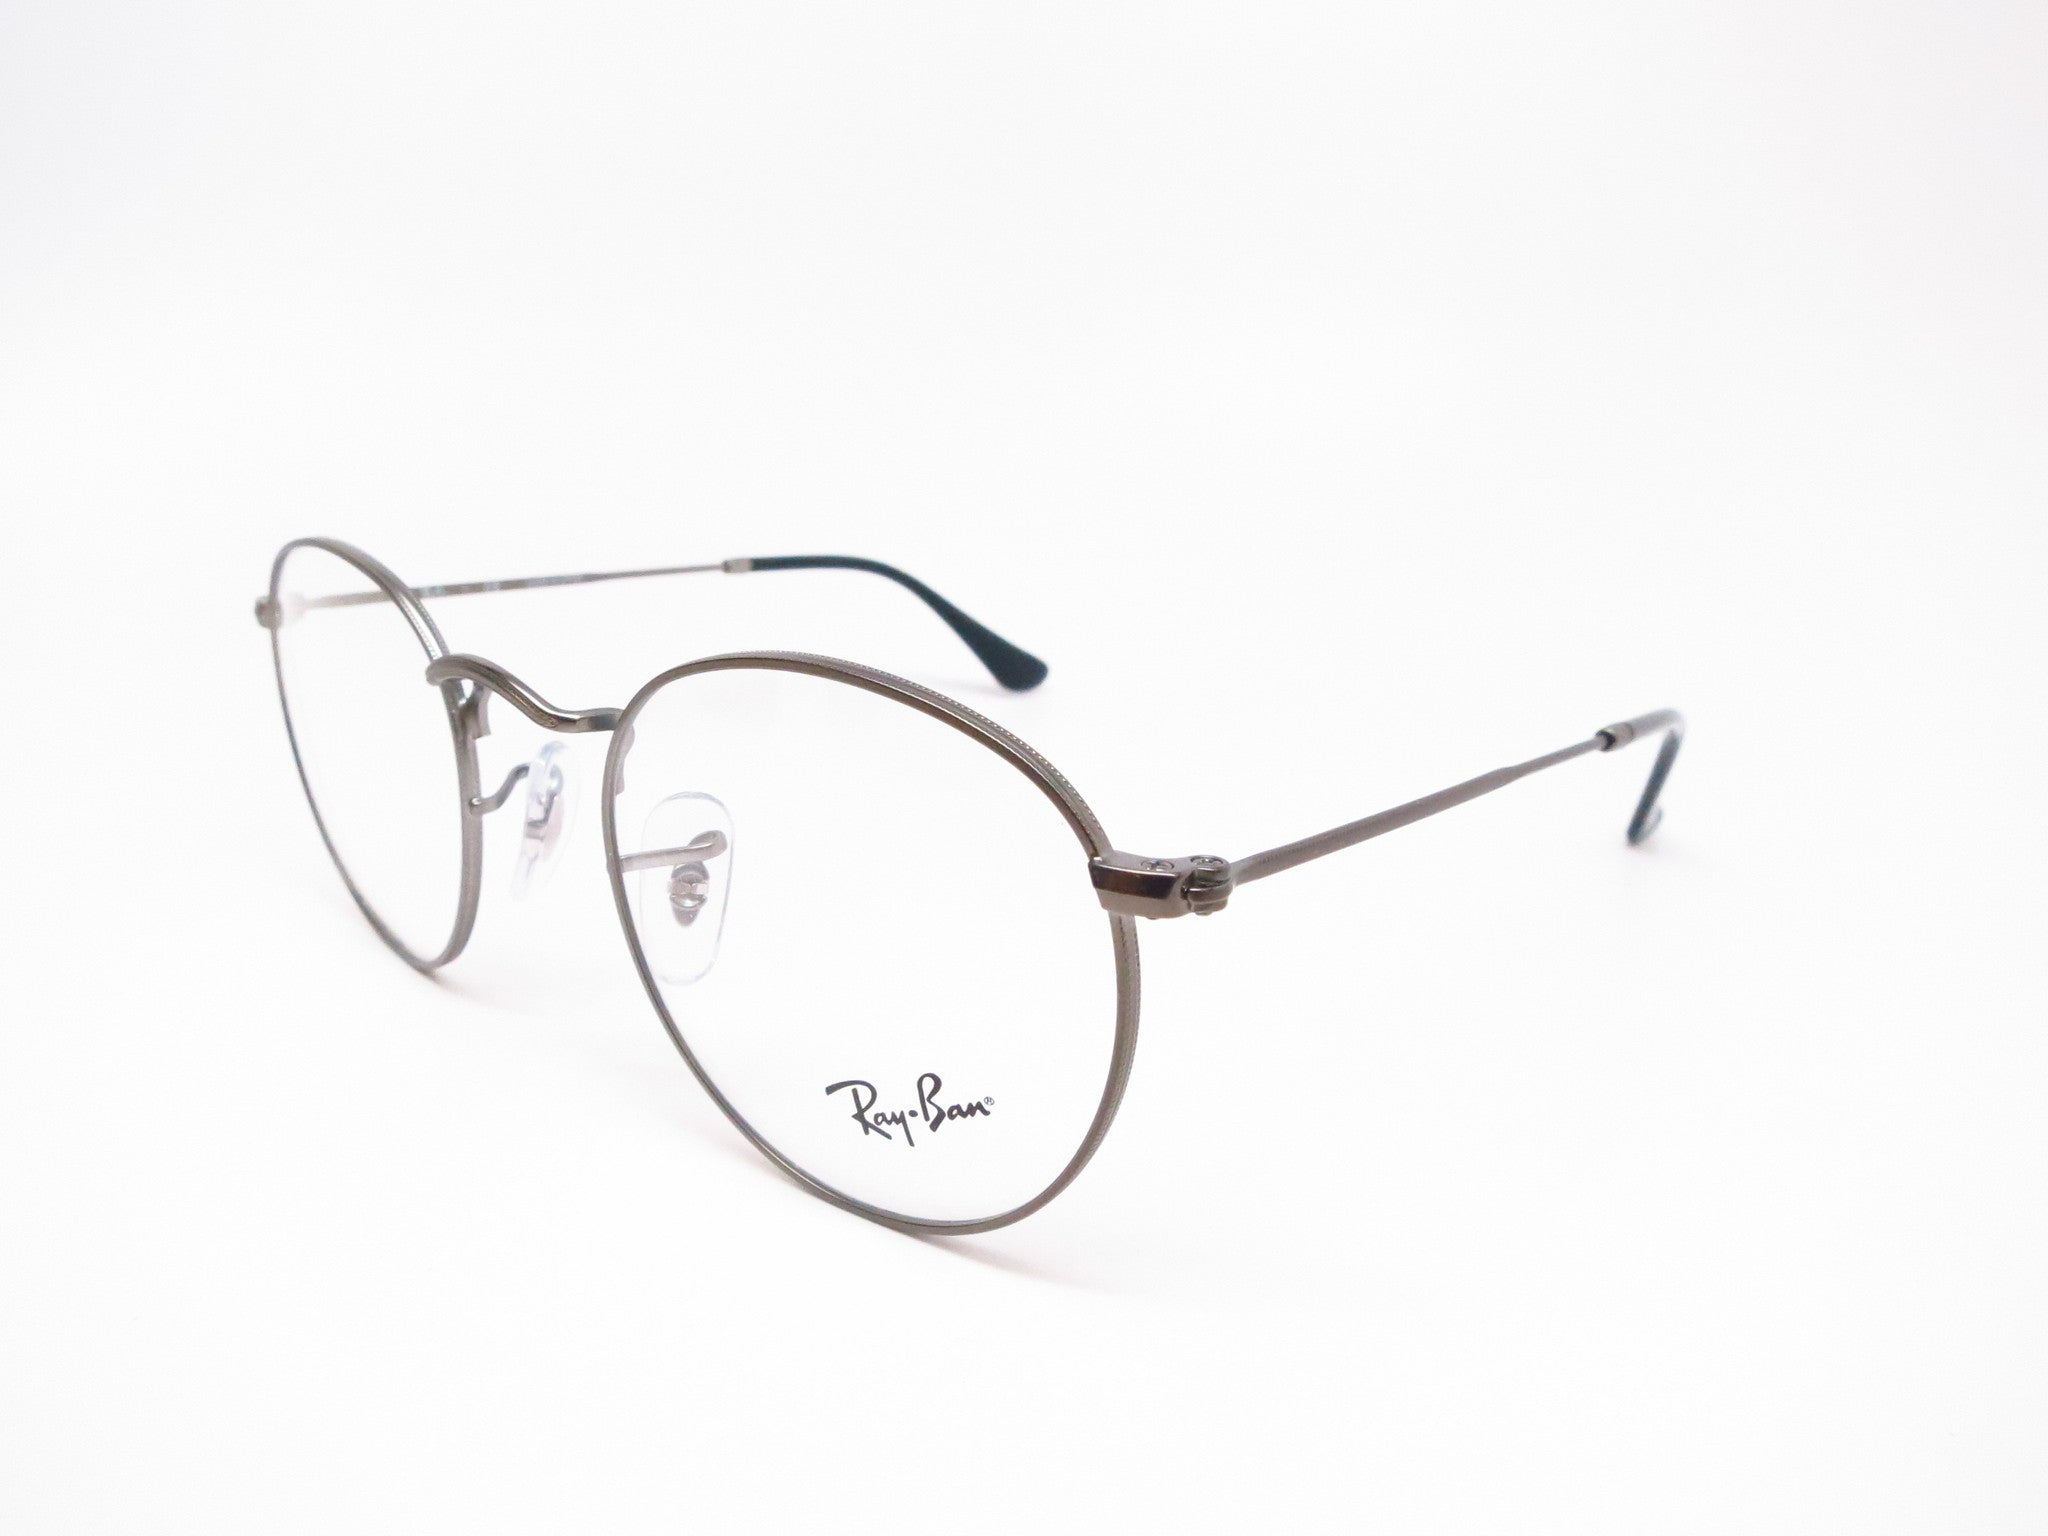 a7d9e84a82 Ray-Ban RB 3447V 2620 Matte Gunmetal Eyeglasses - Eye Heart Shades - Ray-